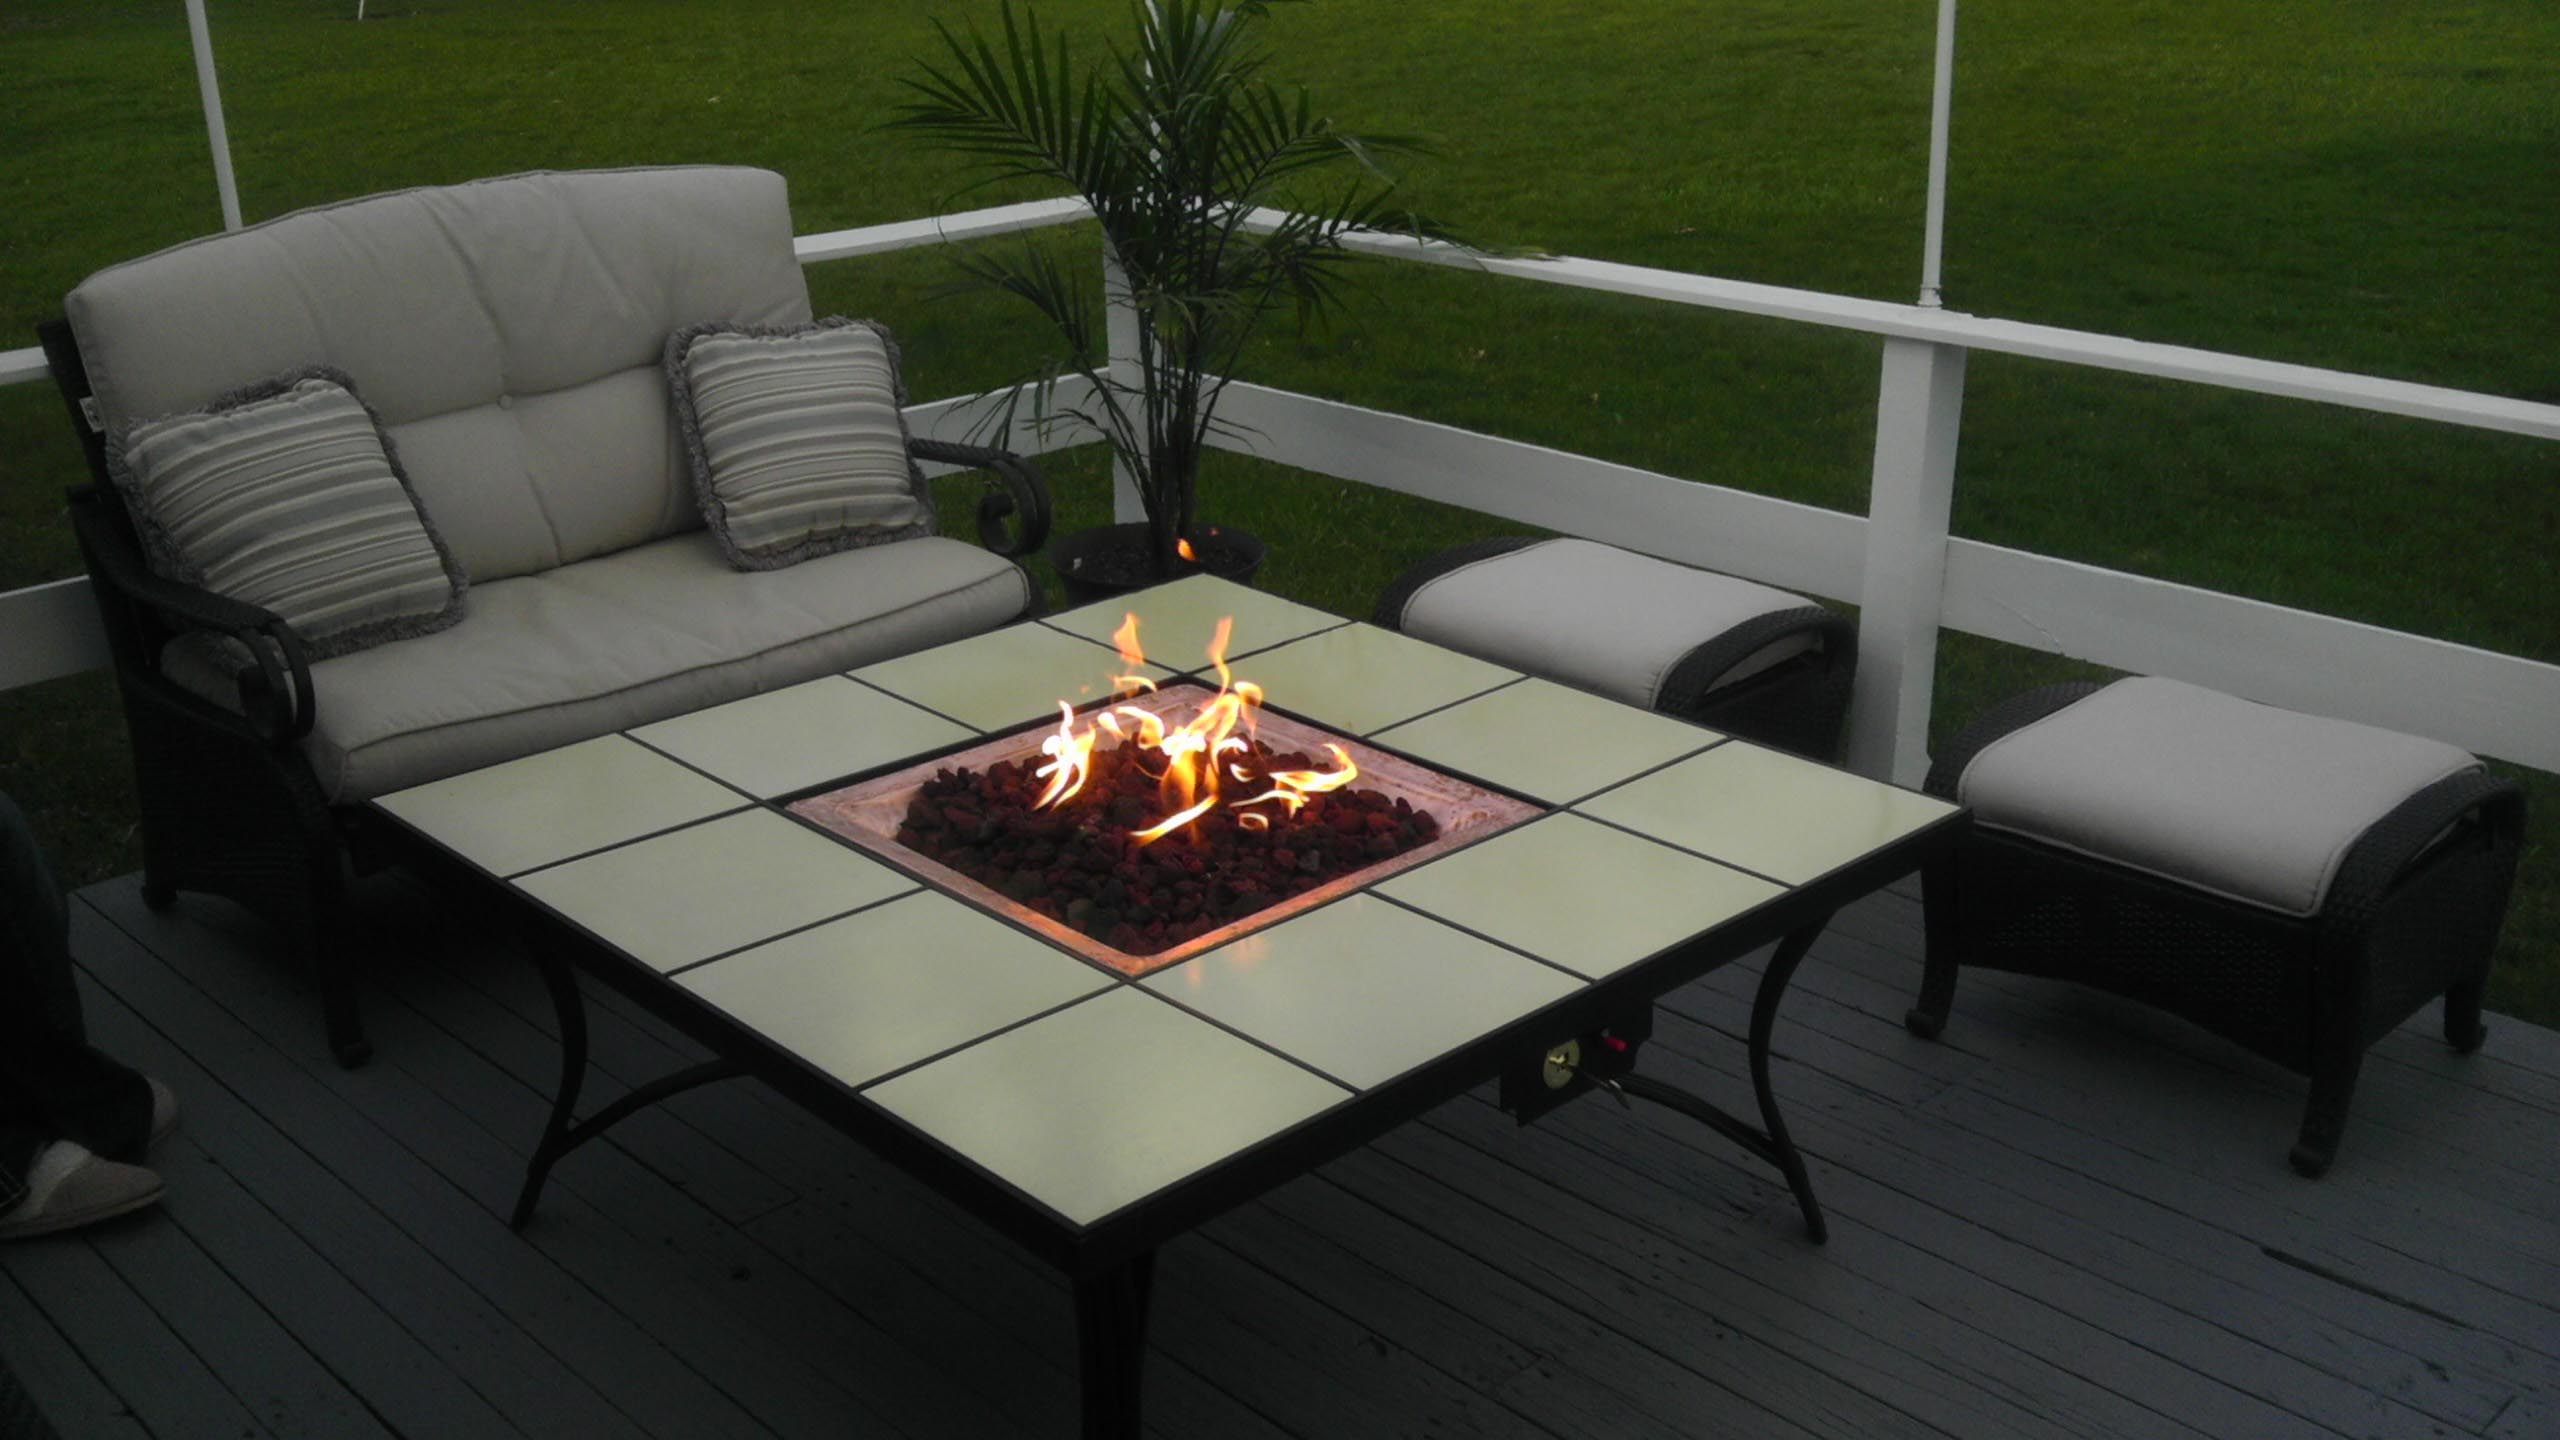 DIY Propane Fire Pit Kit